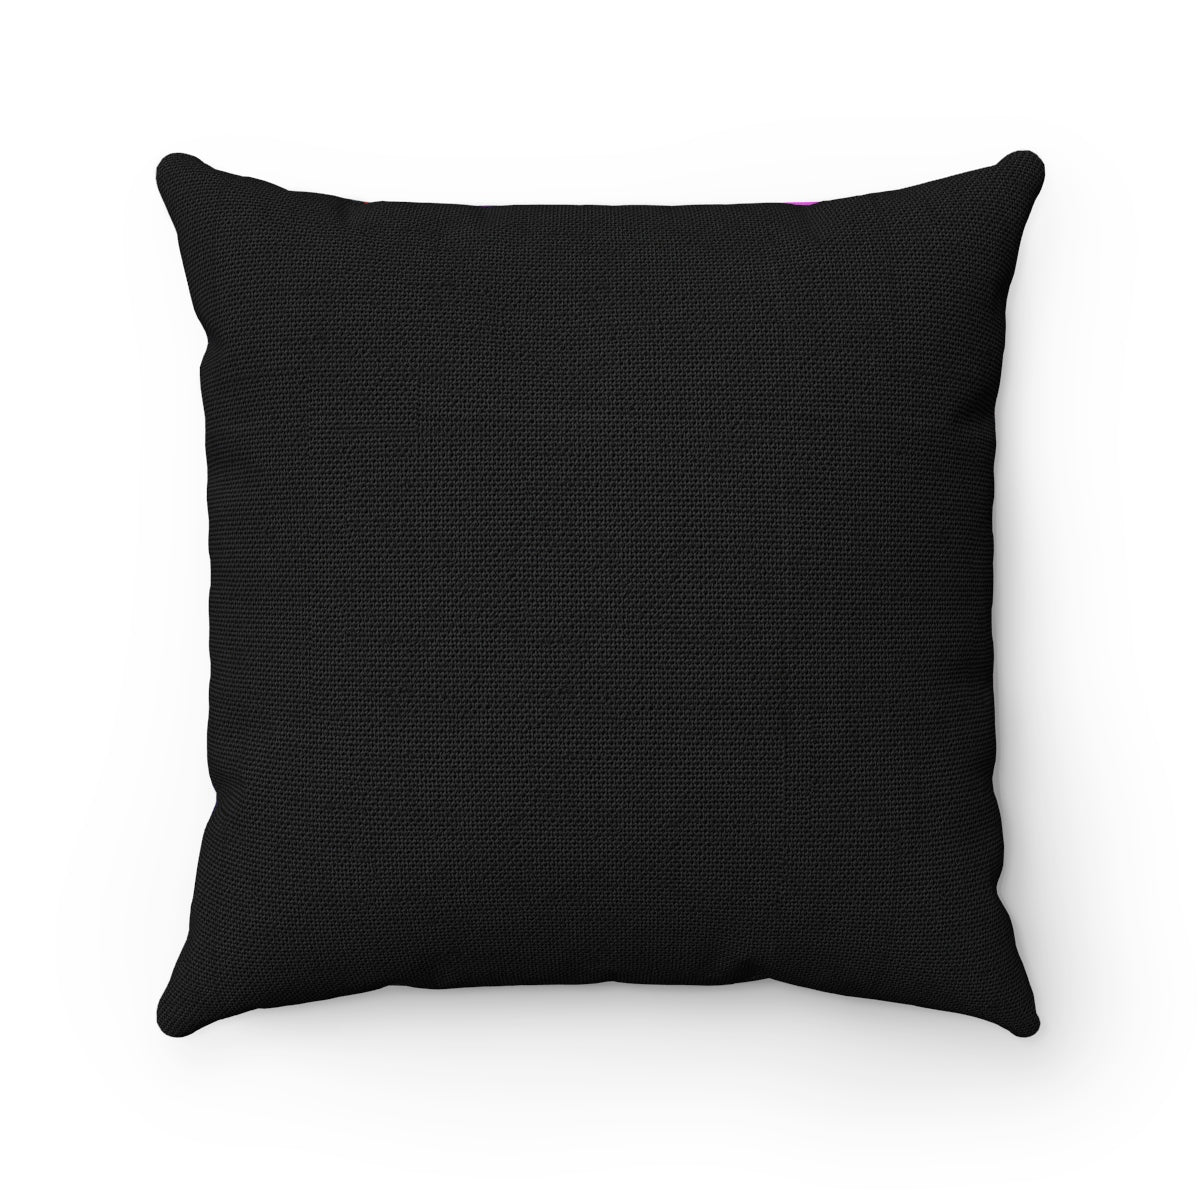 YE Spun Polyester Square Pillow